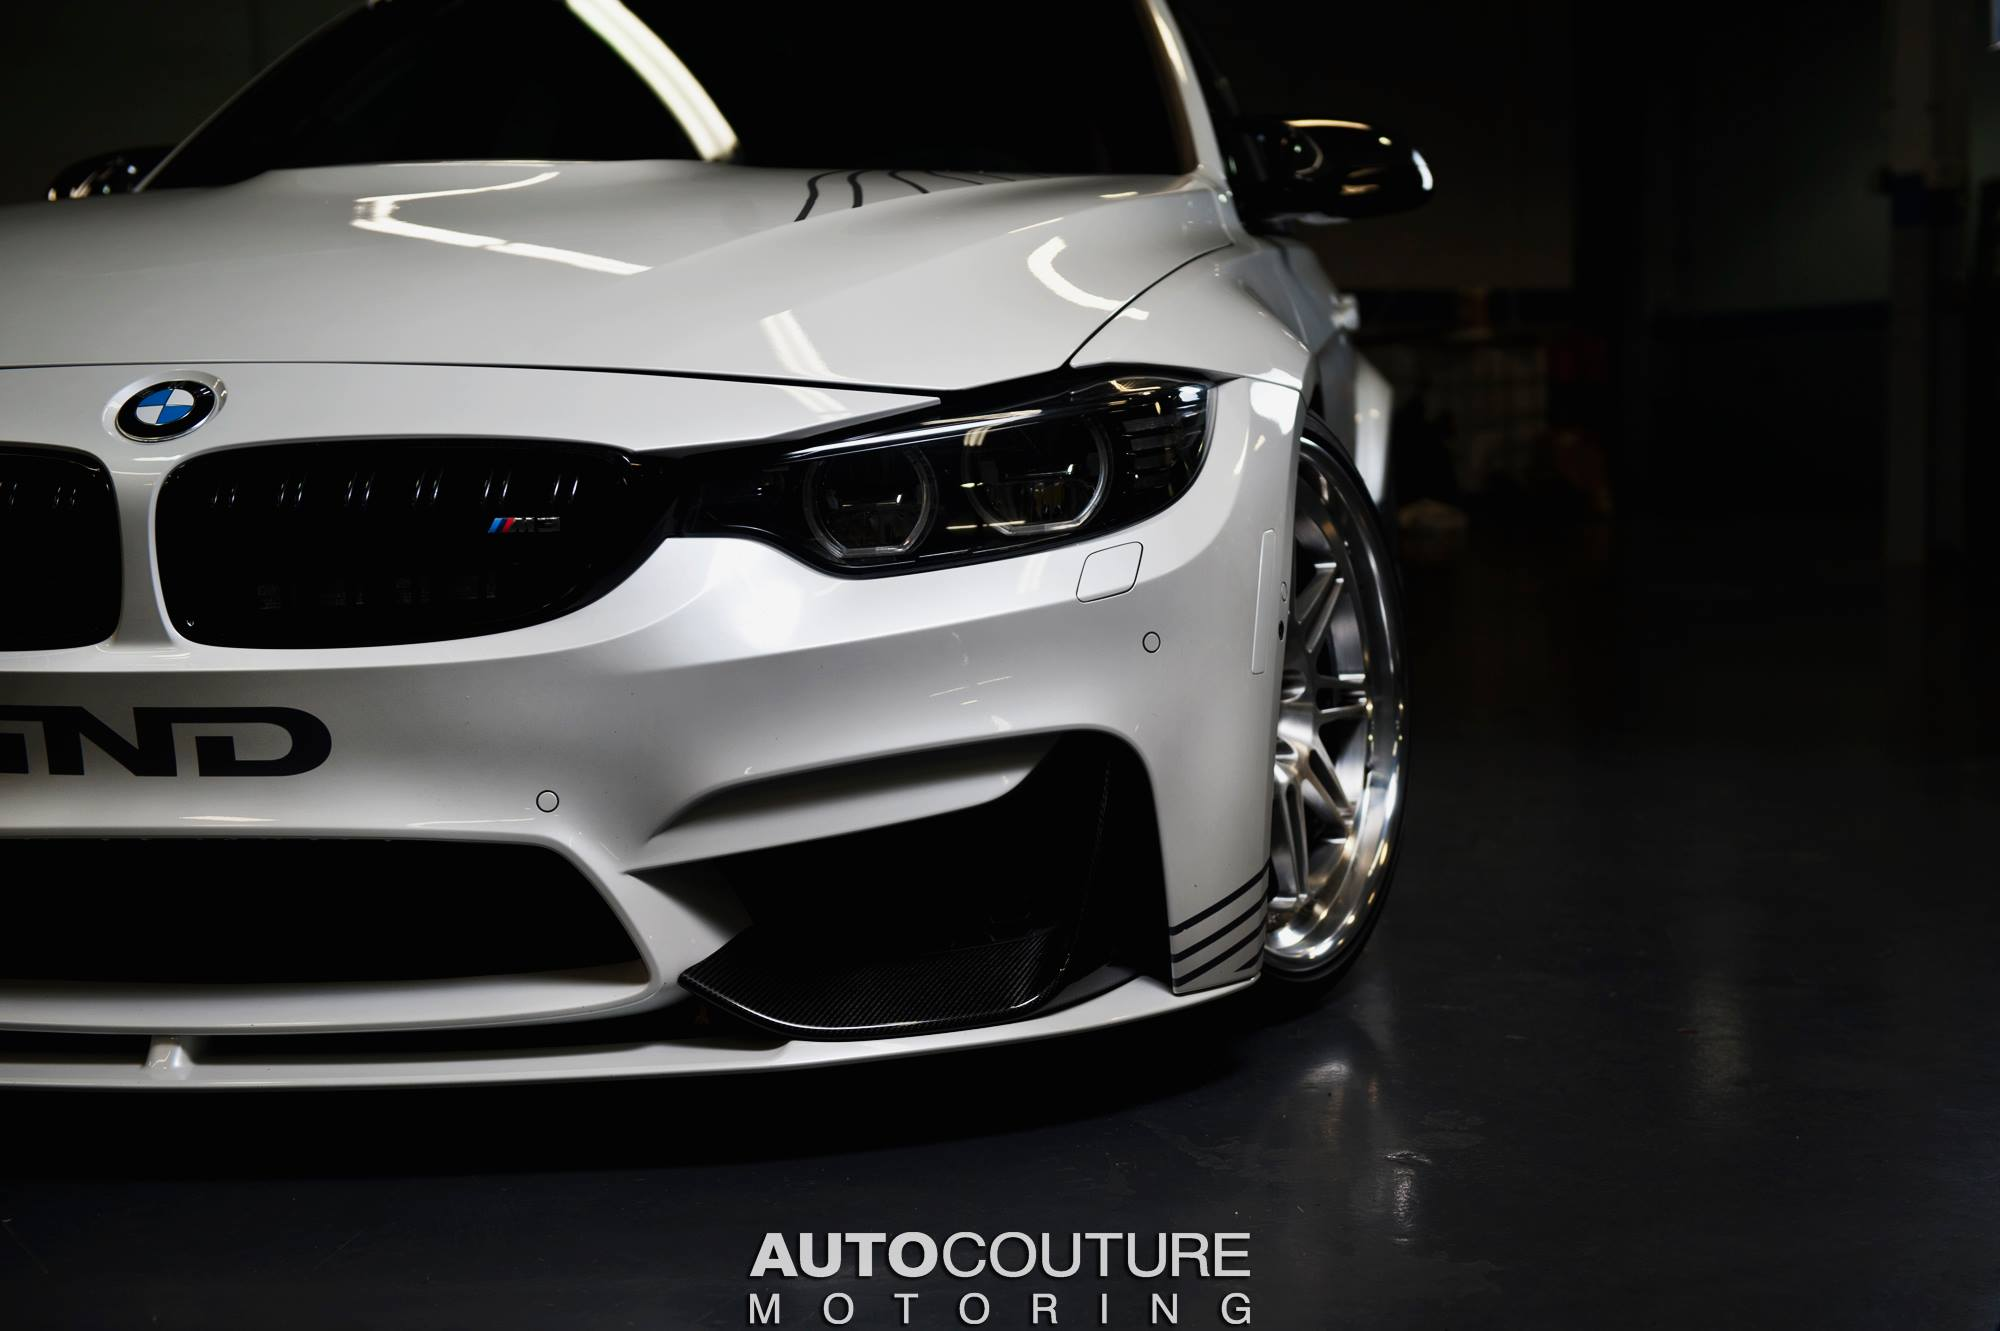 2015 BMW F8x M3 & M4 CUSTOM LED Headlights - ONEighty